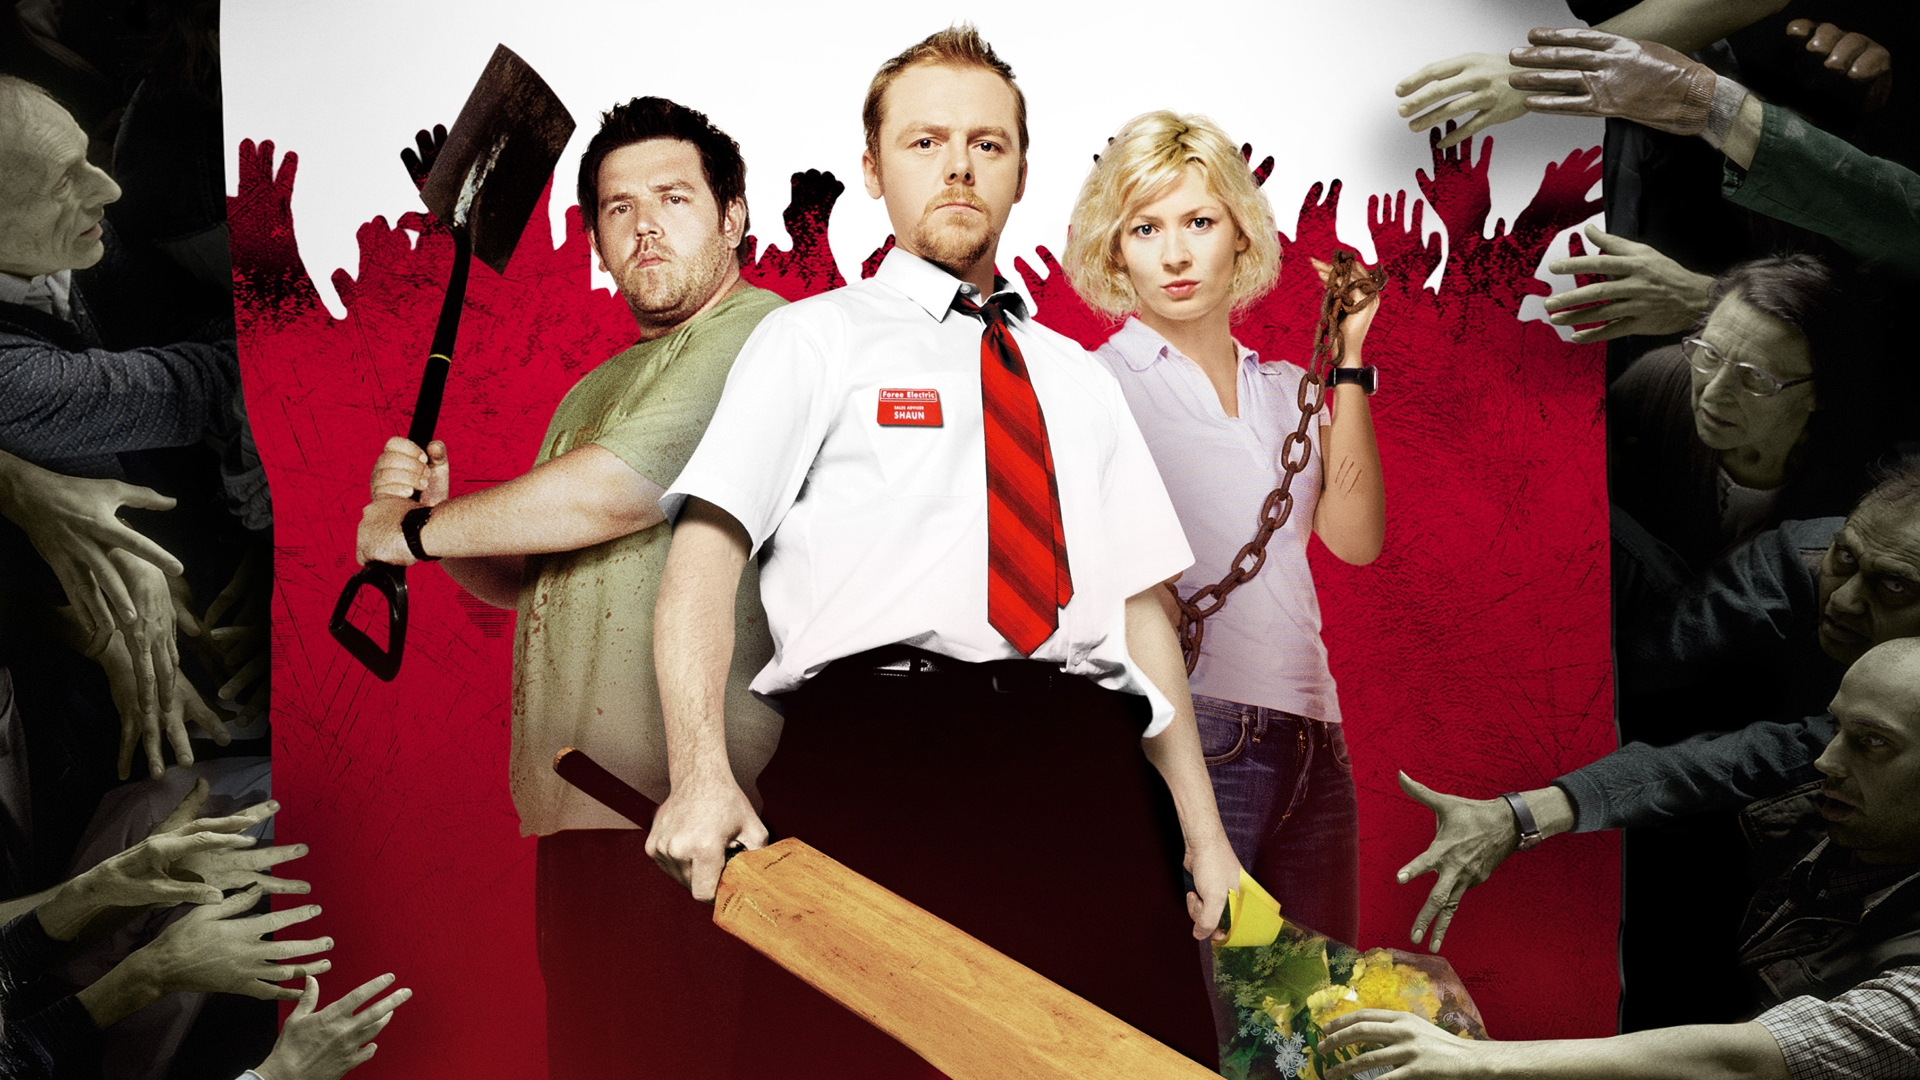 shaun of the dead wallpaper - photo #18